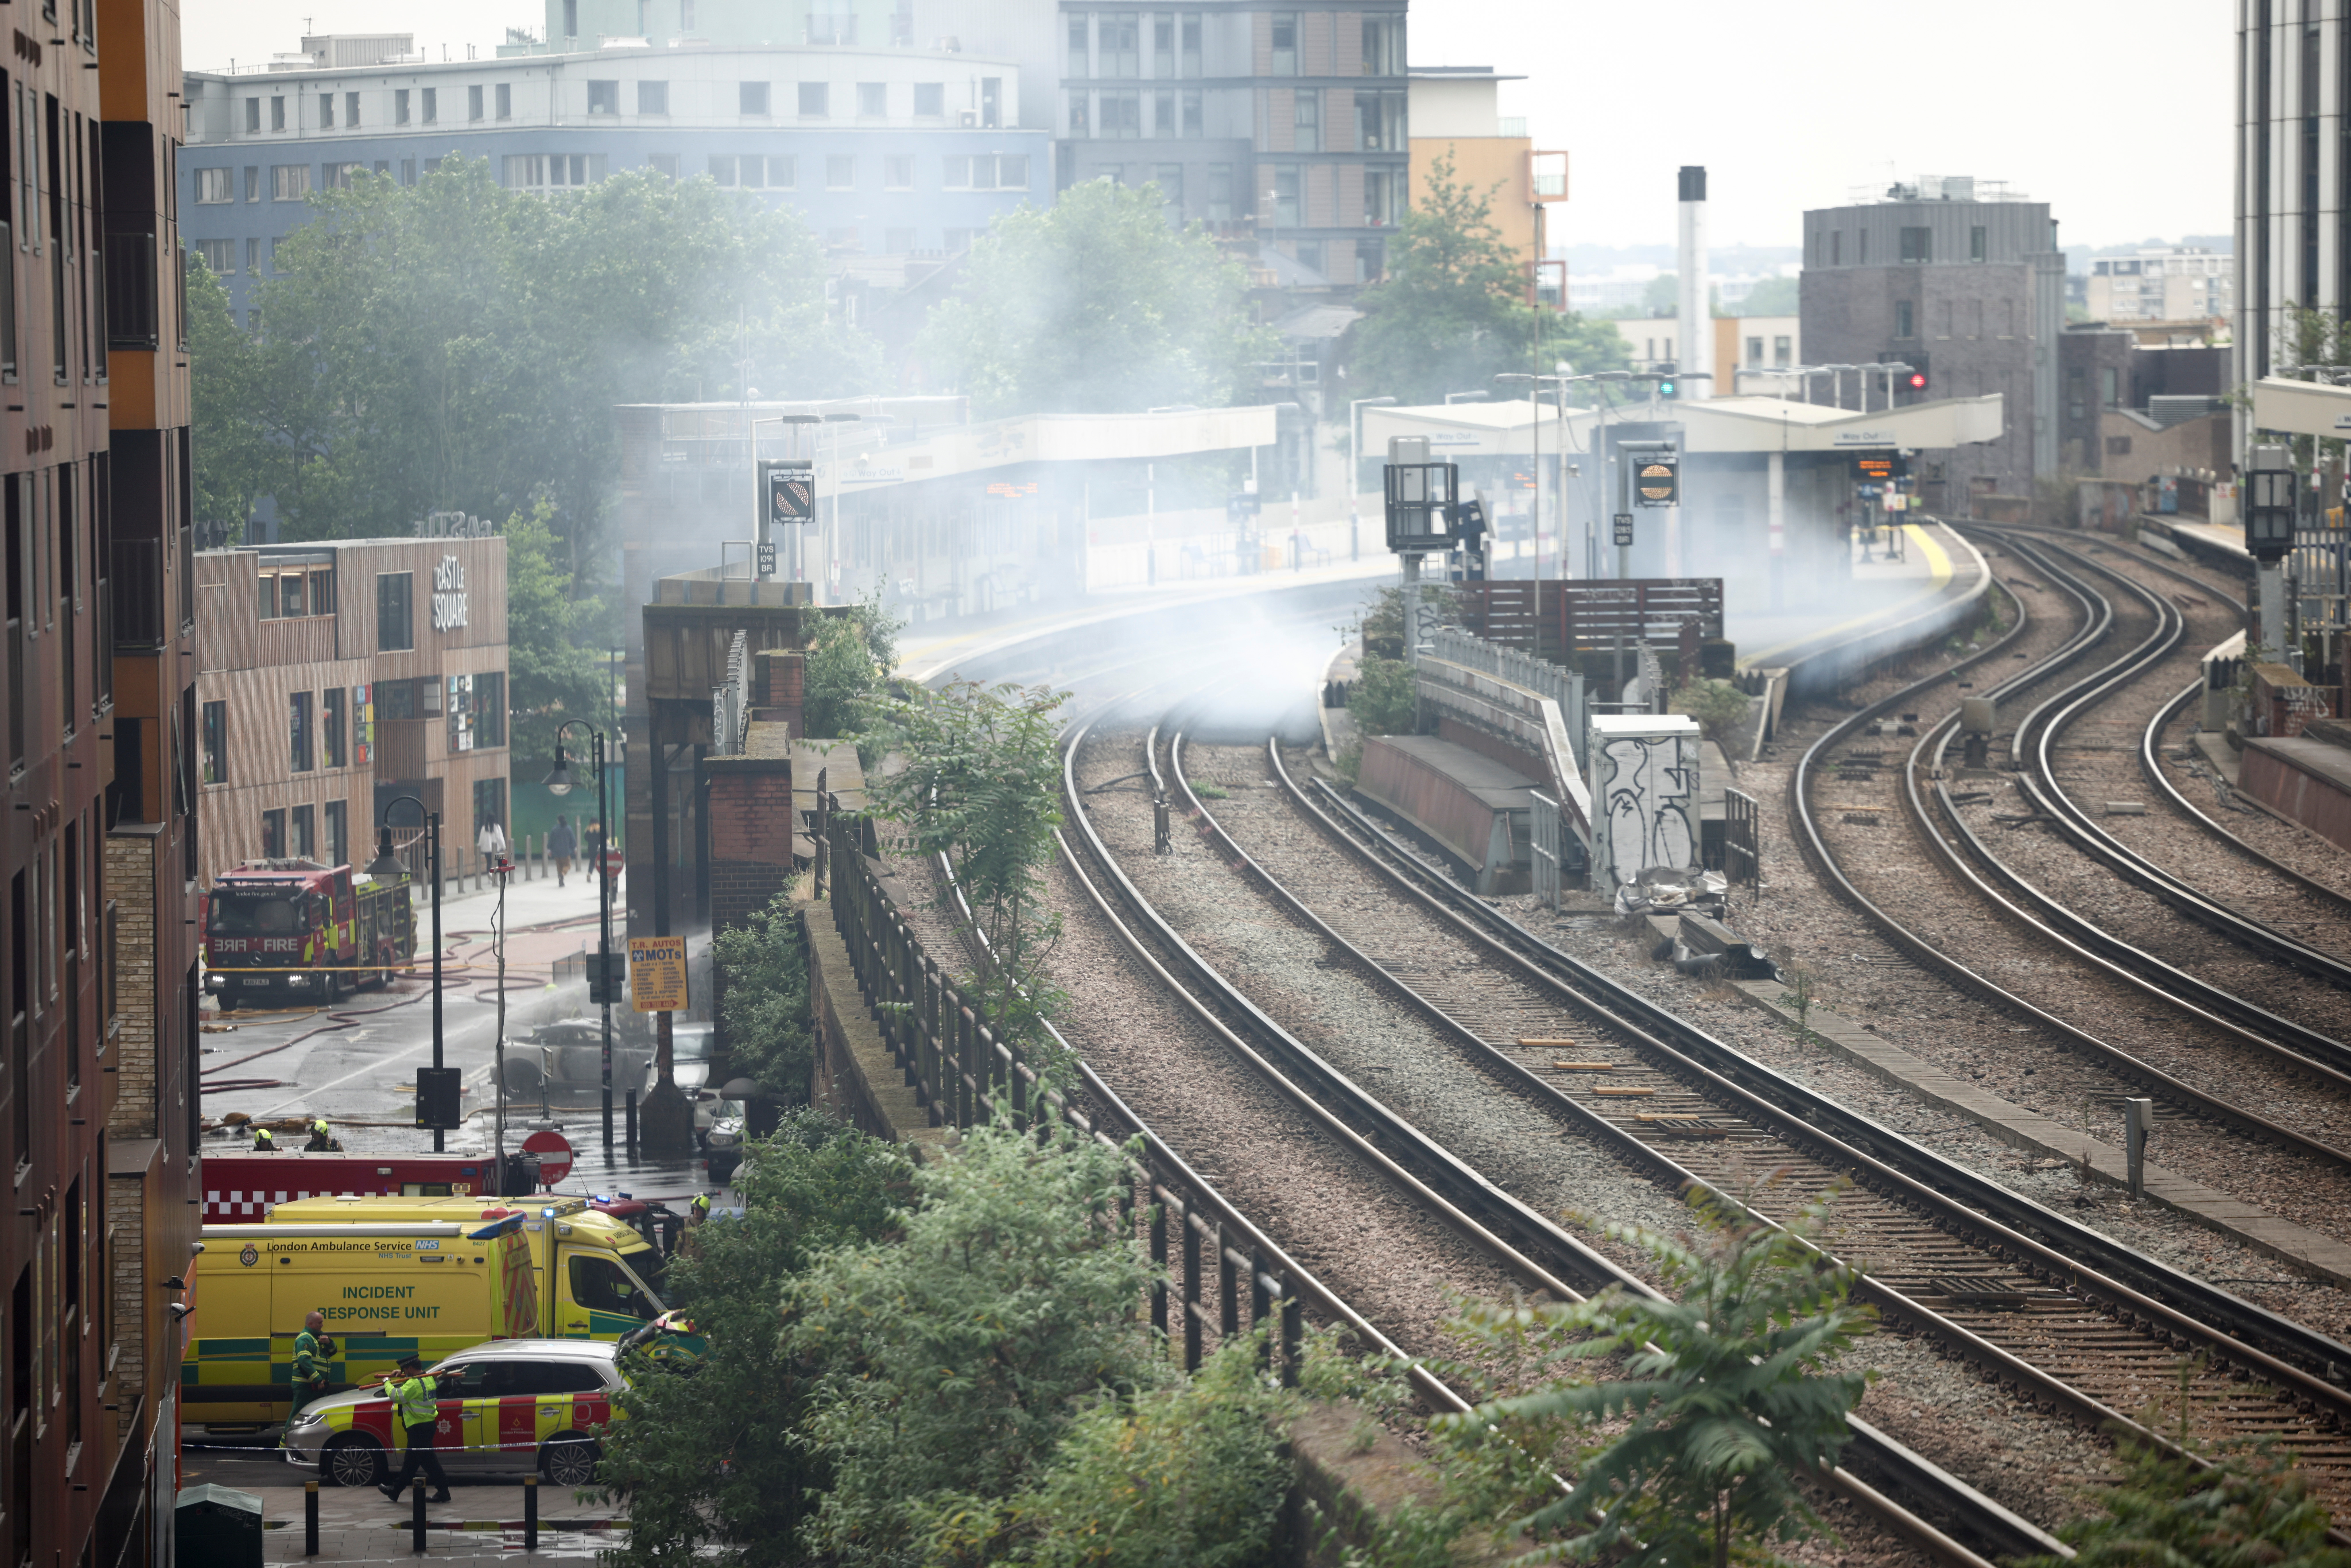 Emergency crews attend to a scene of fire at the Elephant and Castle train station in London, Britain June 28, 2021. REUTERS/Henry Nicholls